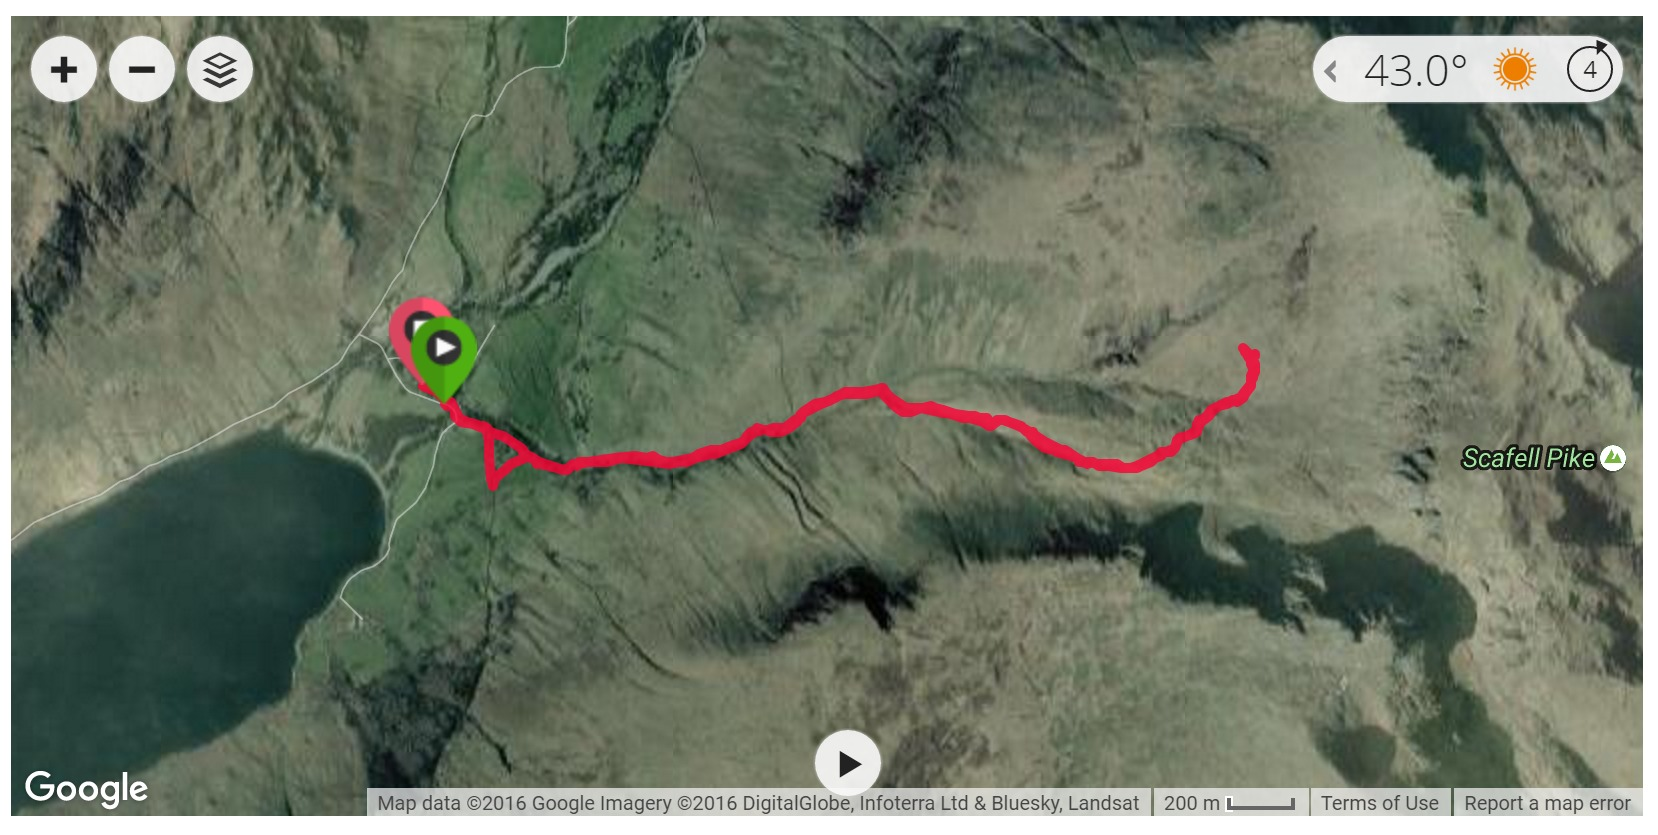 Scafell Pike - Satellite